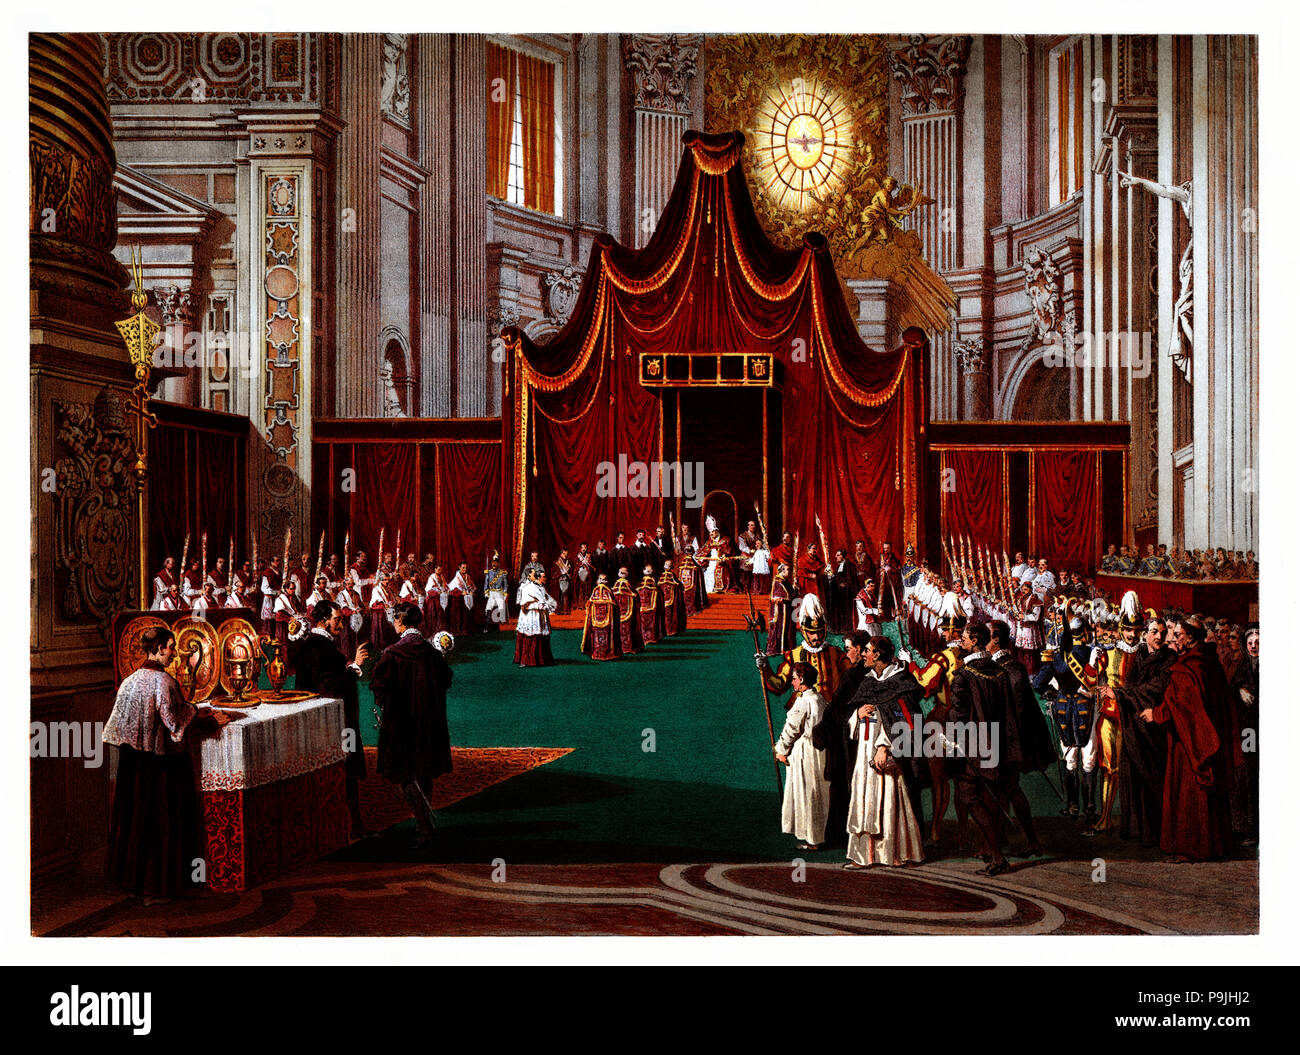 Pontifical ceremonies. Blessing of the Palm Sunday. Color engraving from 1871. - Stock Image